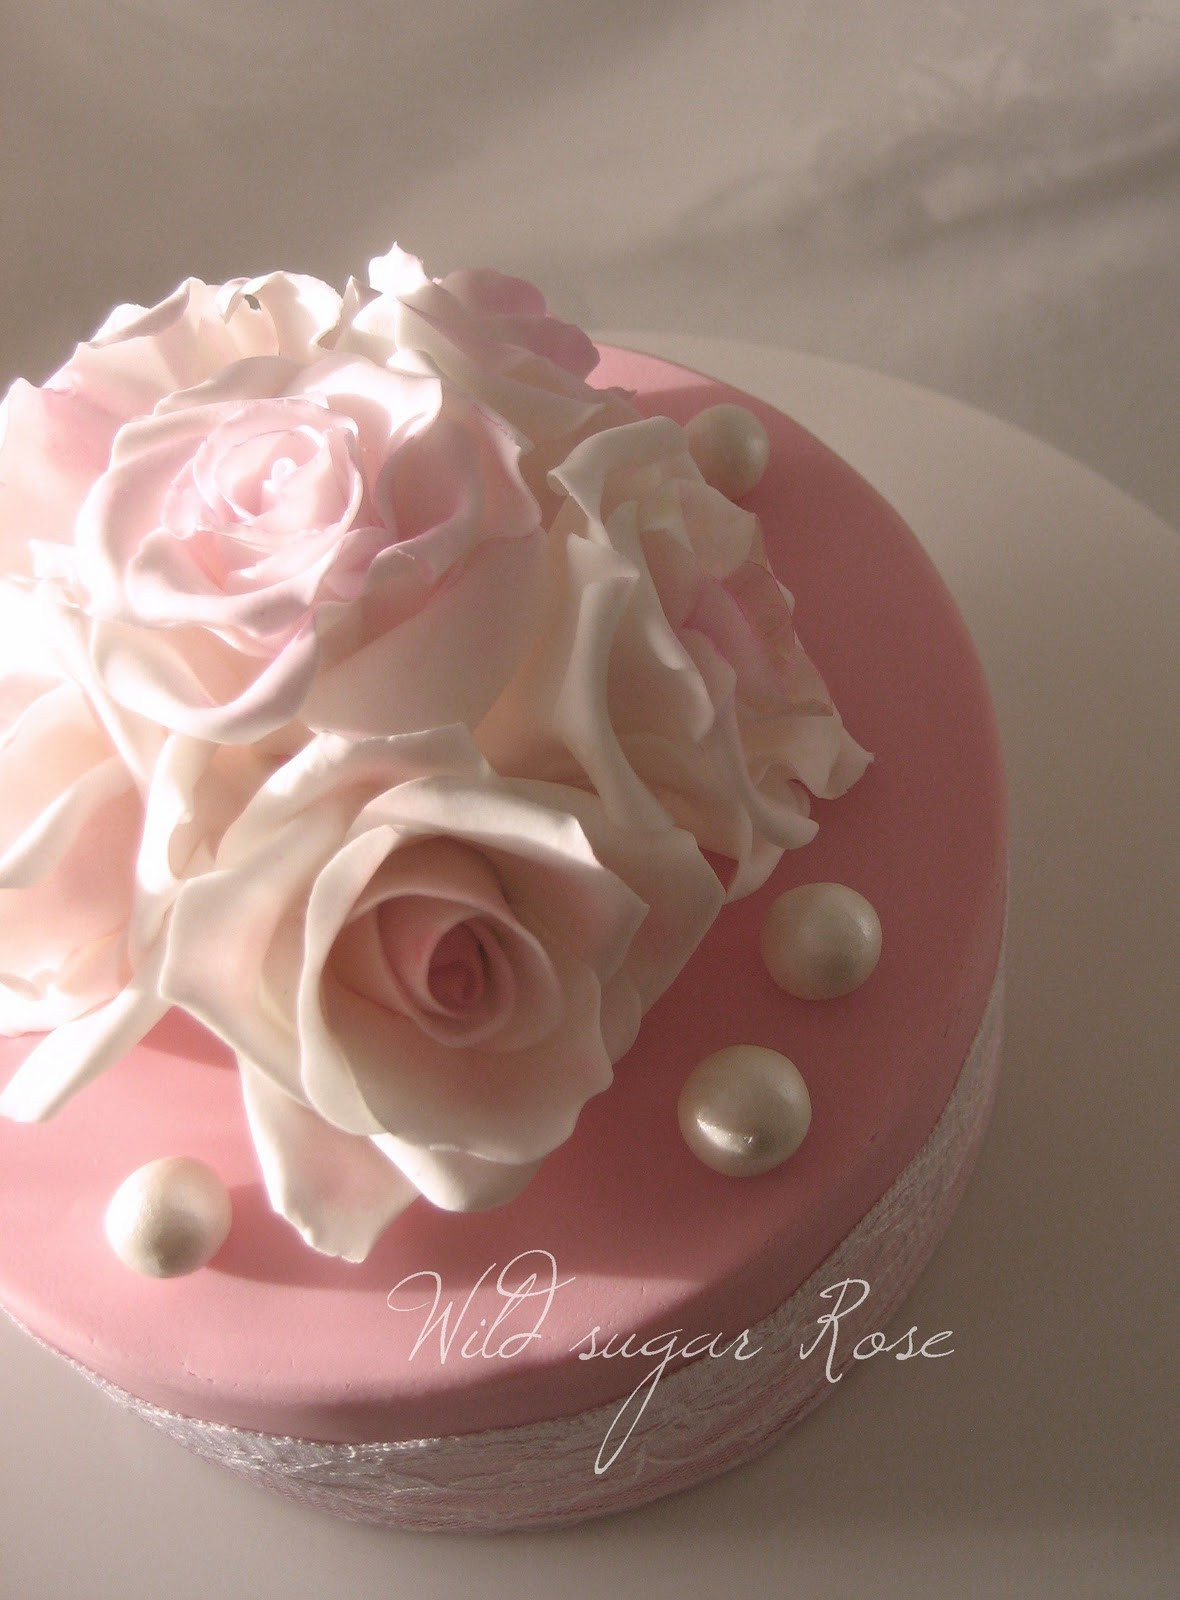 Wild sugar Rose - wedding cakes, cupcakes and cake ...